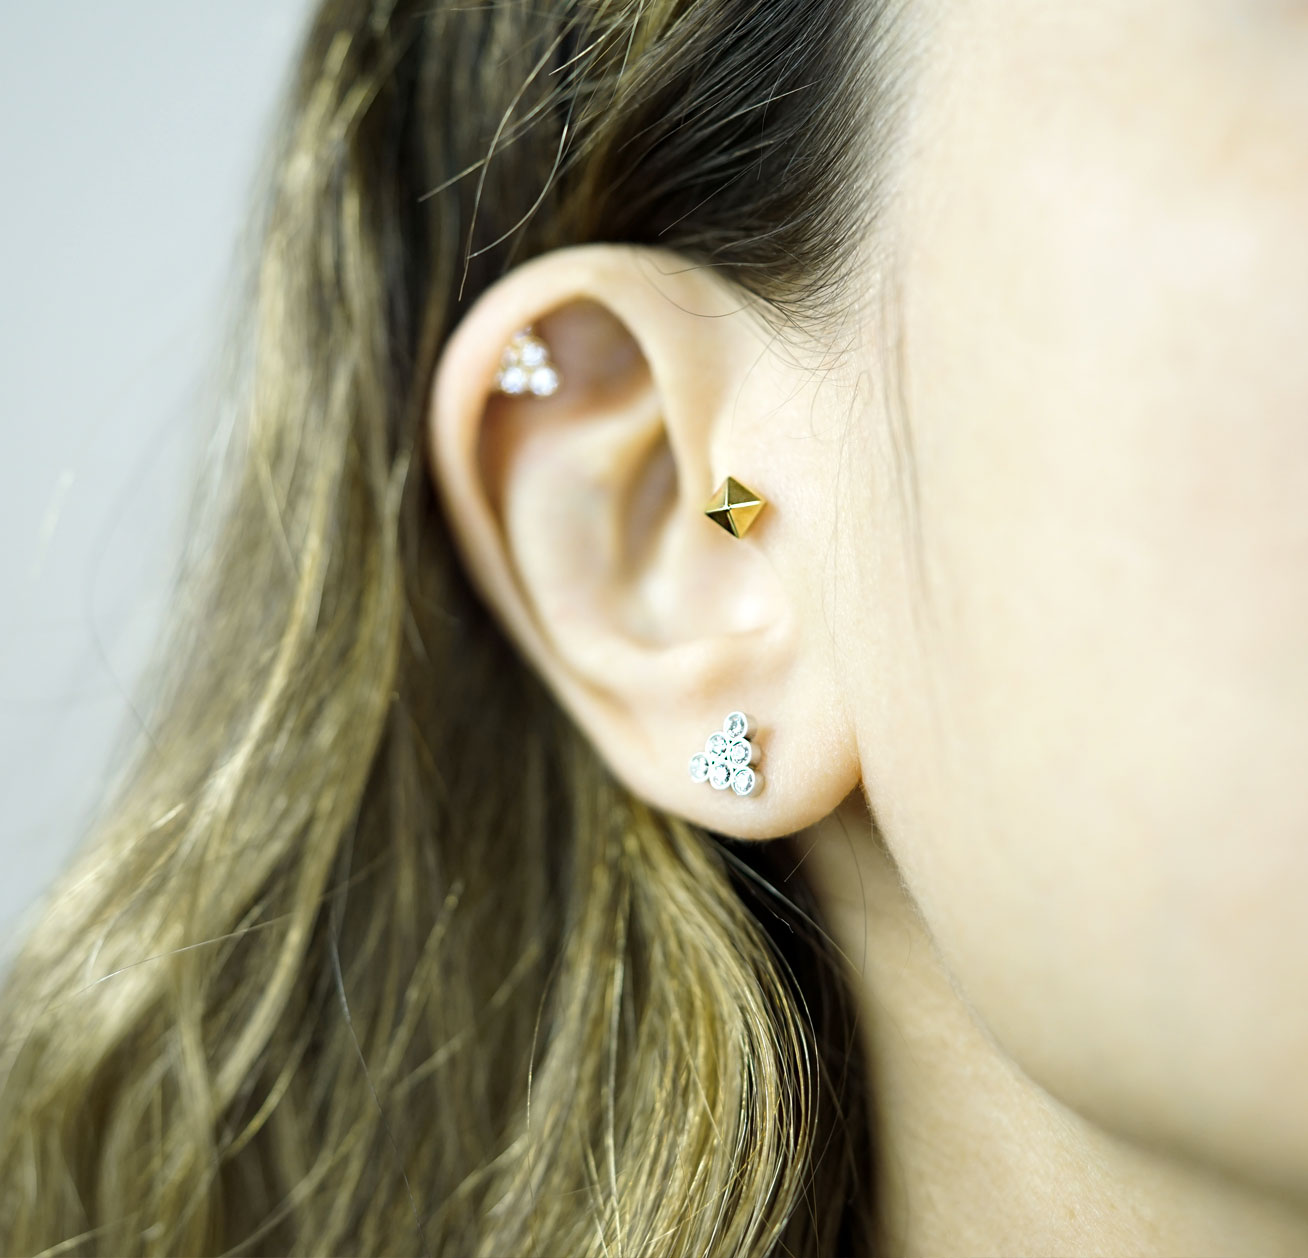 unisex-18k-solid-yellow-gold-handcrafted-pyramid-stud-for-cartilage-ear-screw-back